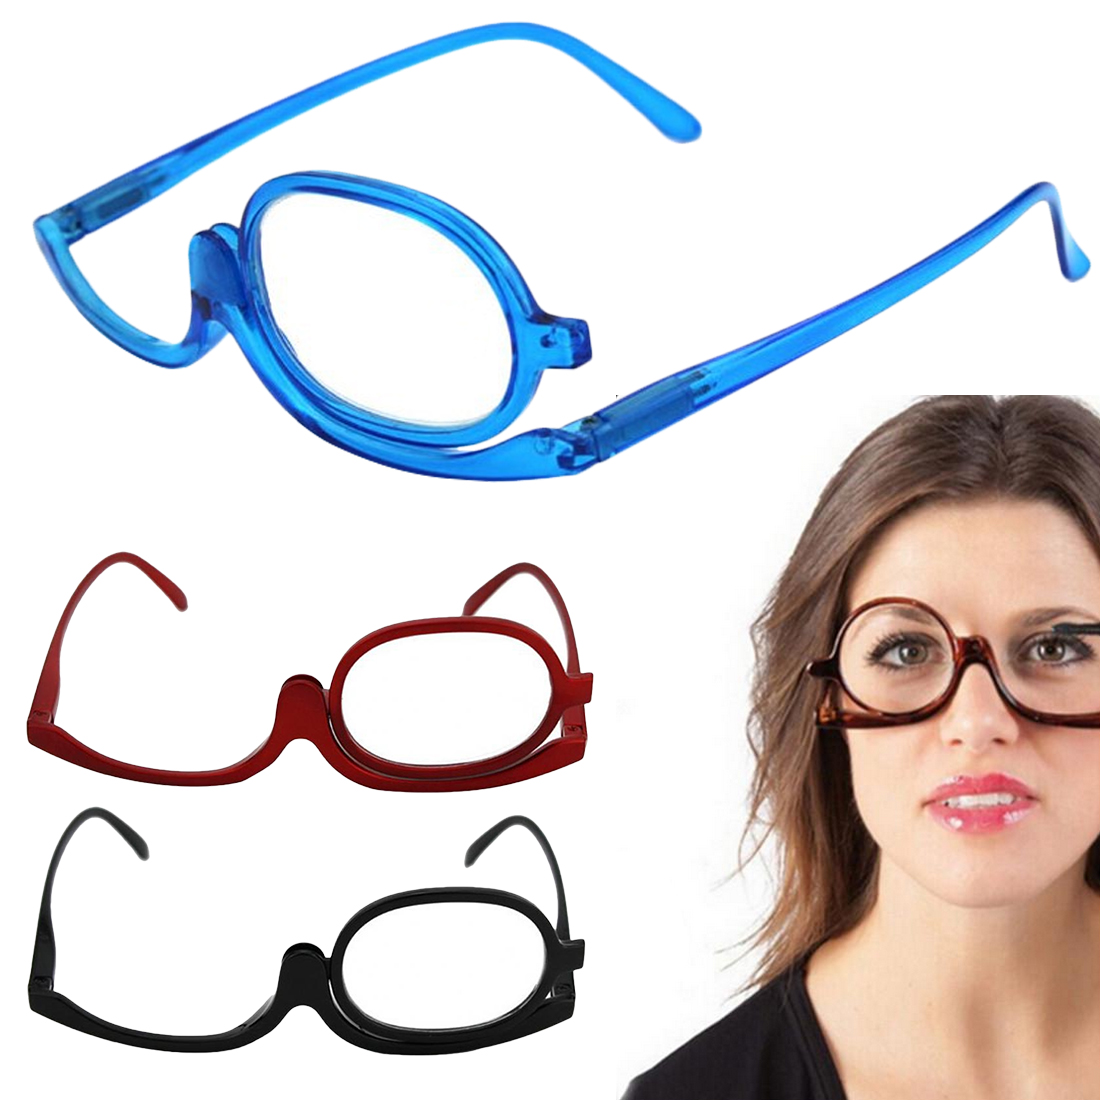 2019 New 3 Colors Reading Glass Magnifying Glasses Makeup Folding Eyeglasses Cosmetic General